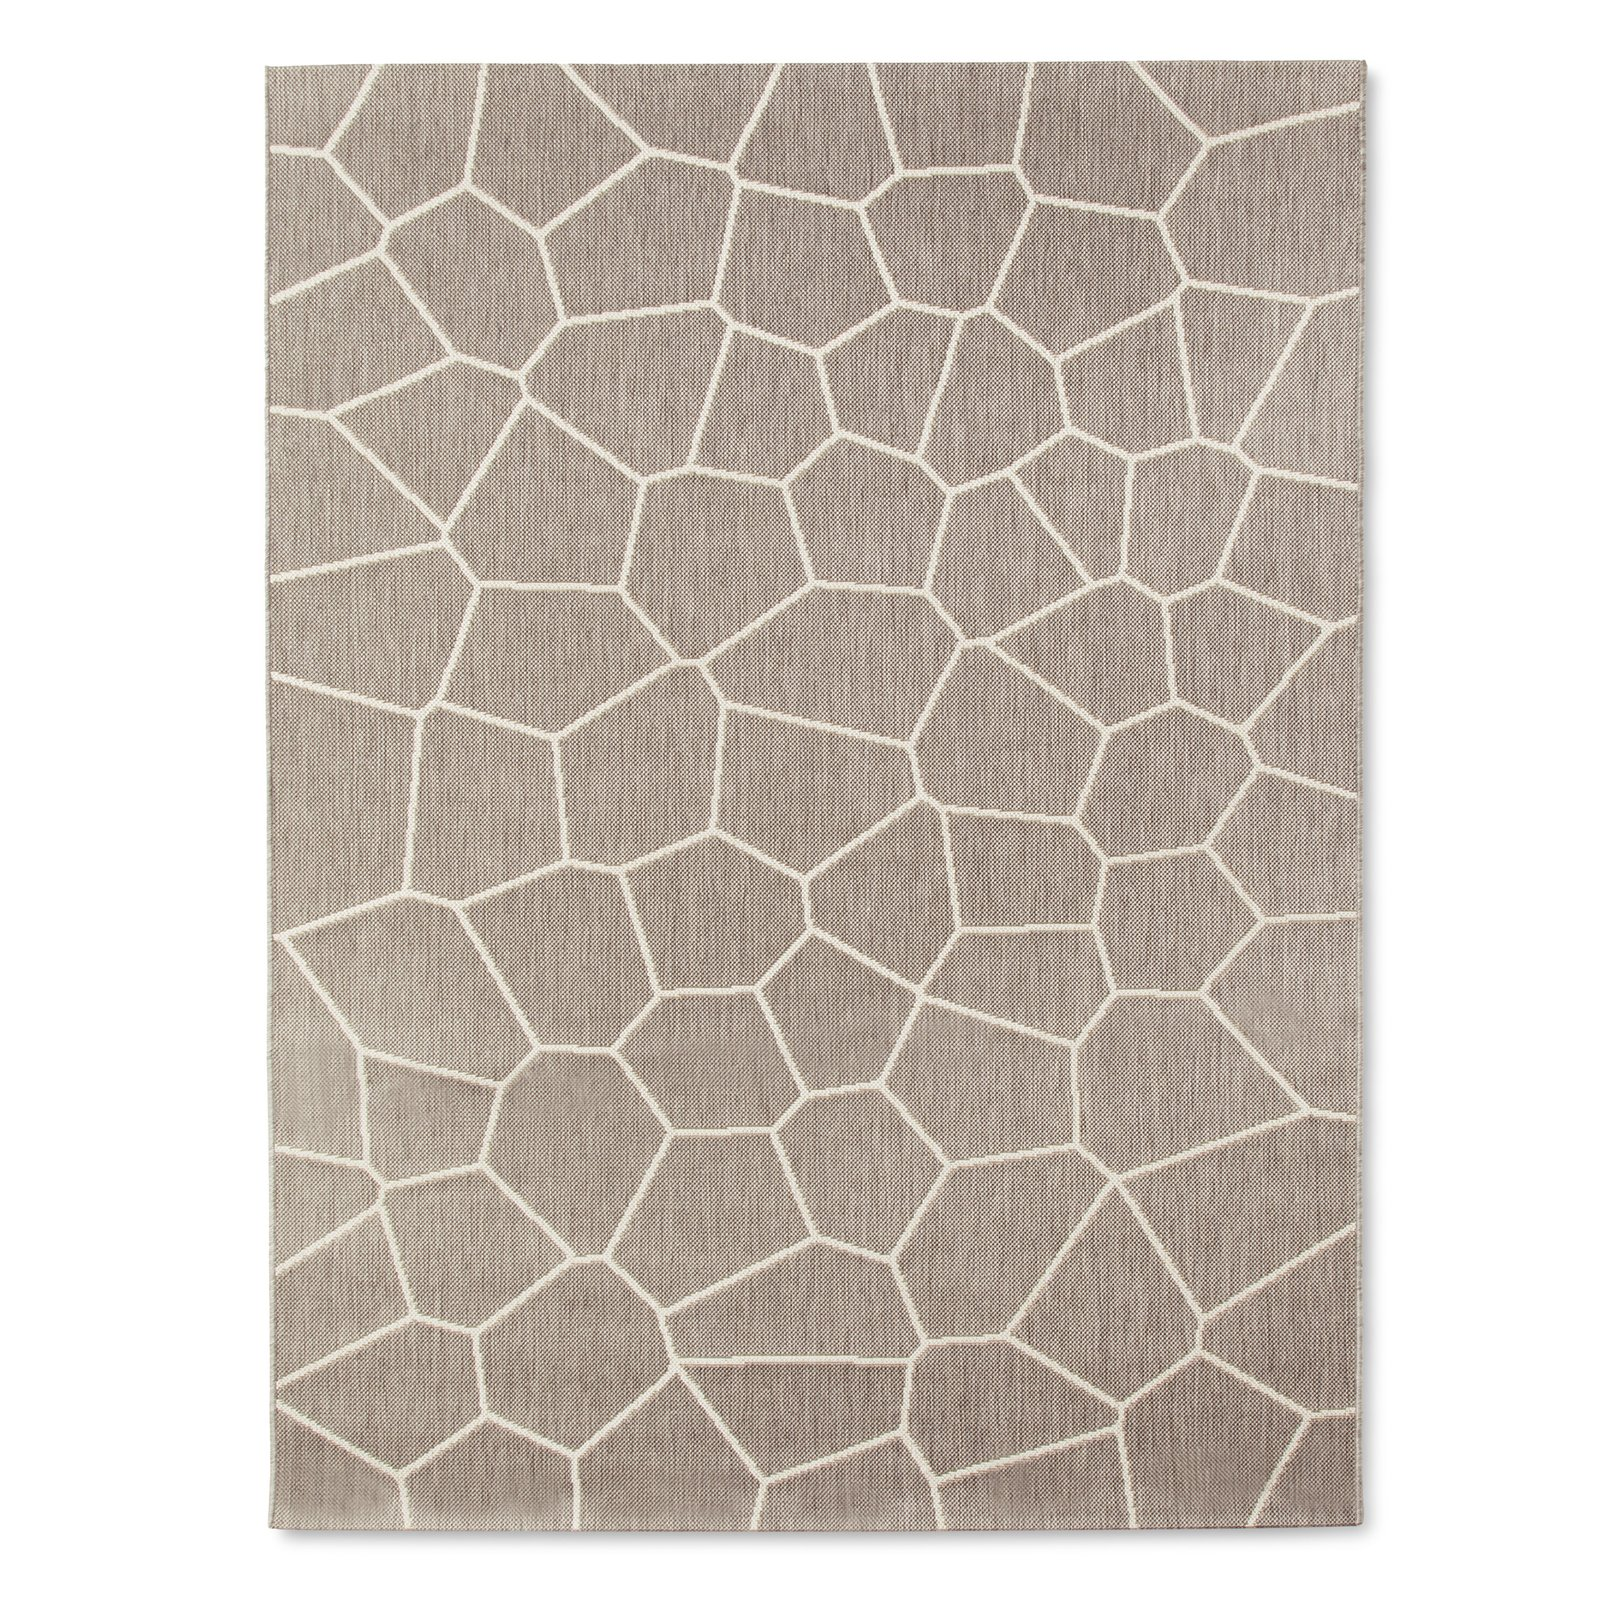 Outdoor Rug 5x7 or 8x10', $89.99-$129.99; available in gray or navy; designed by Chris Deam and Nick Dine for Modern by Dwell Magazine for Target   Photo 15 of 17 in Modern by Dwell Magazine: Outdoor Collection